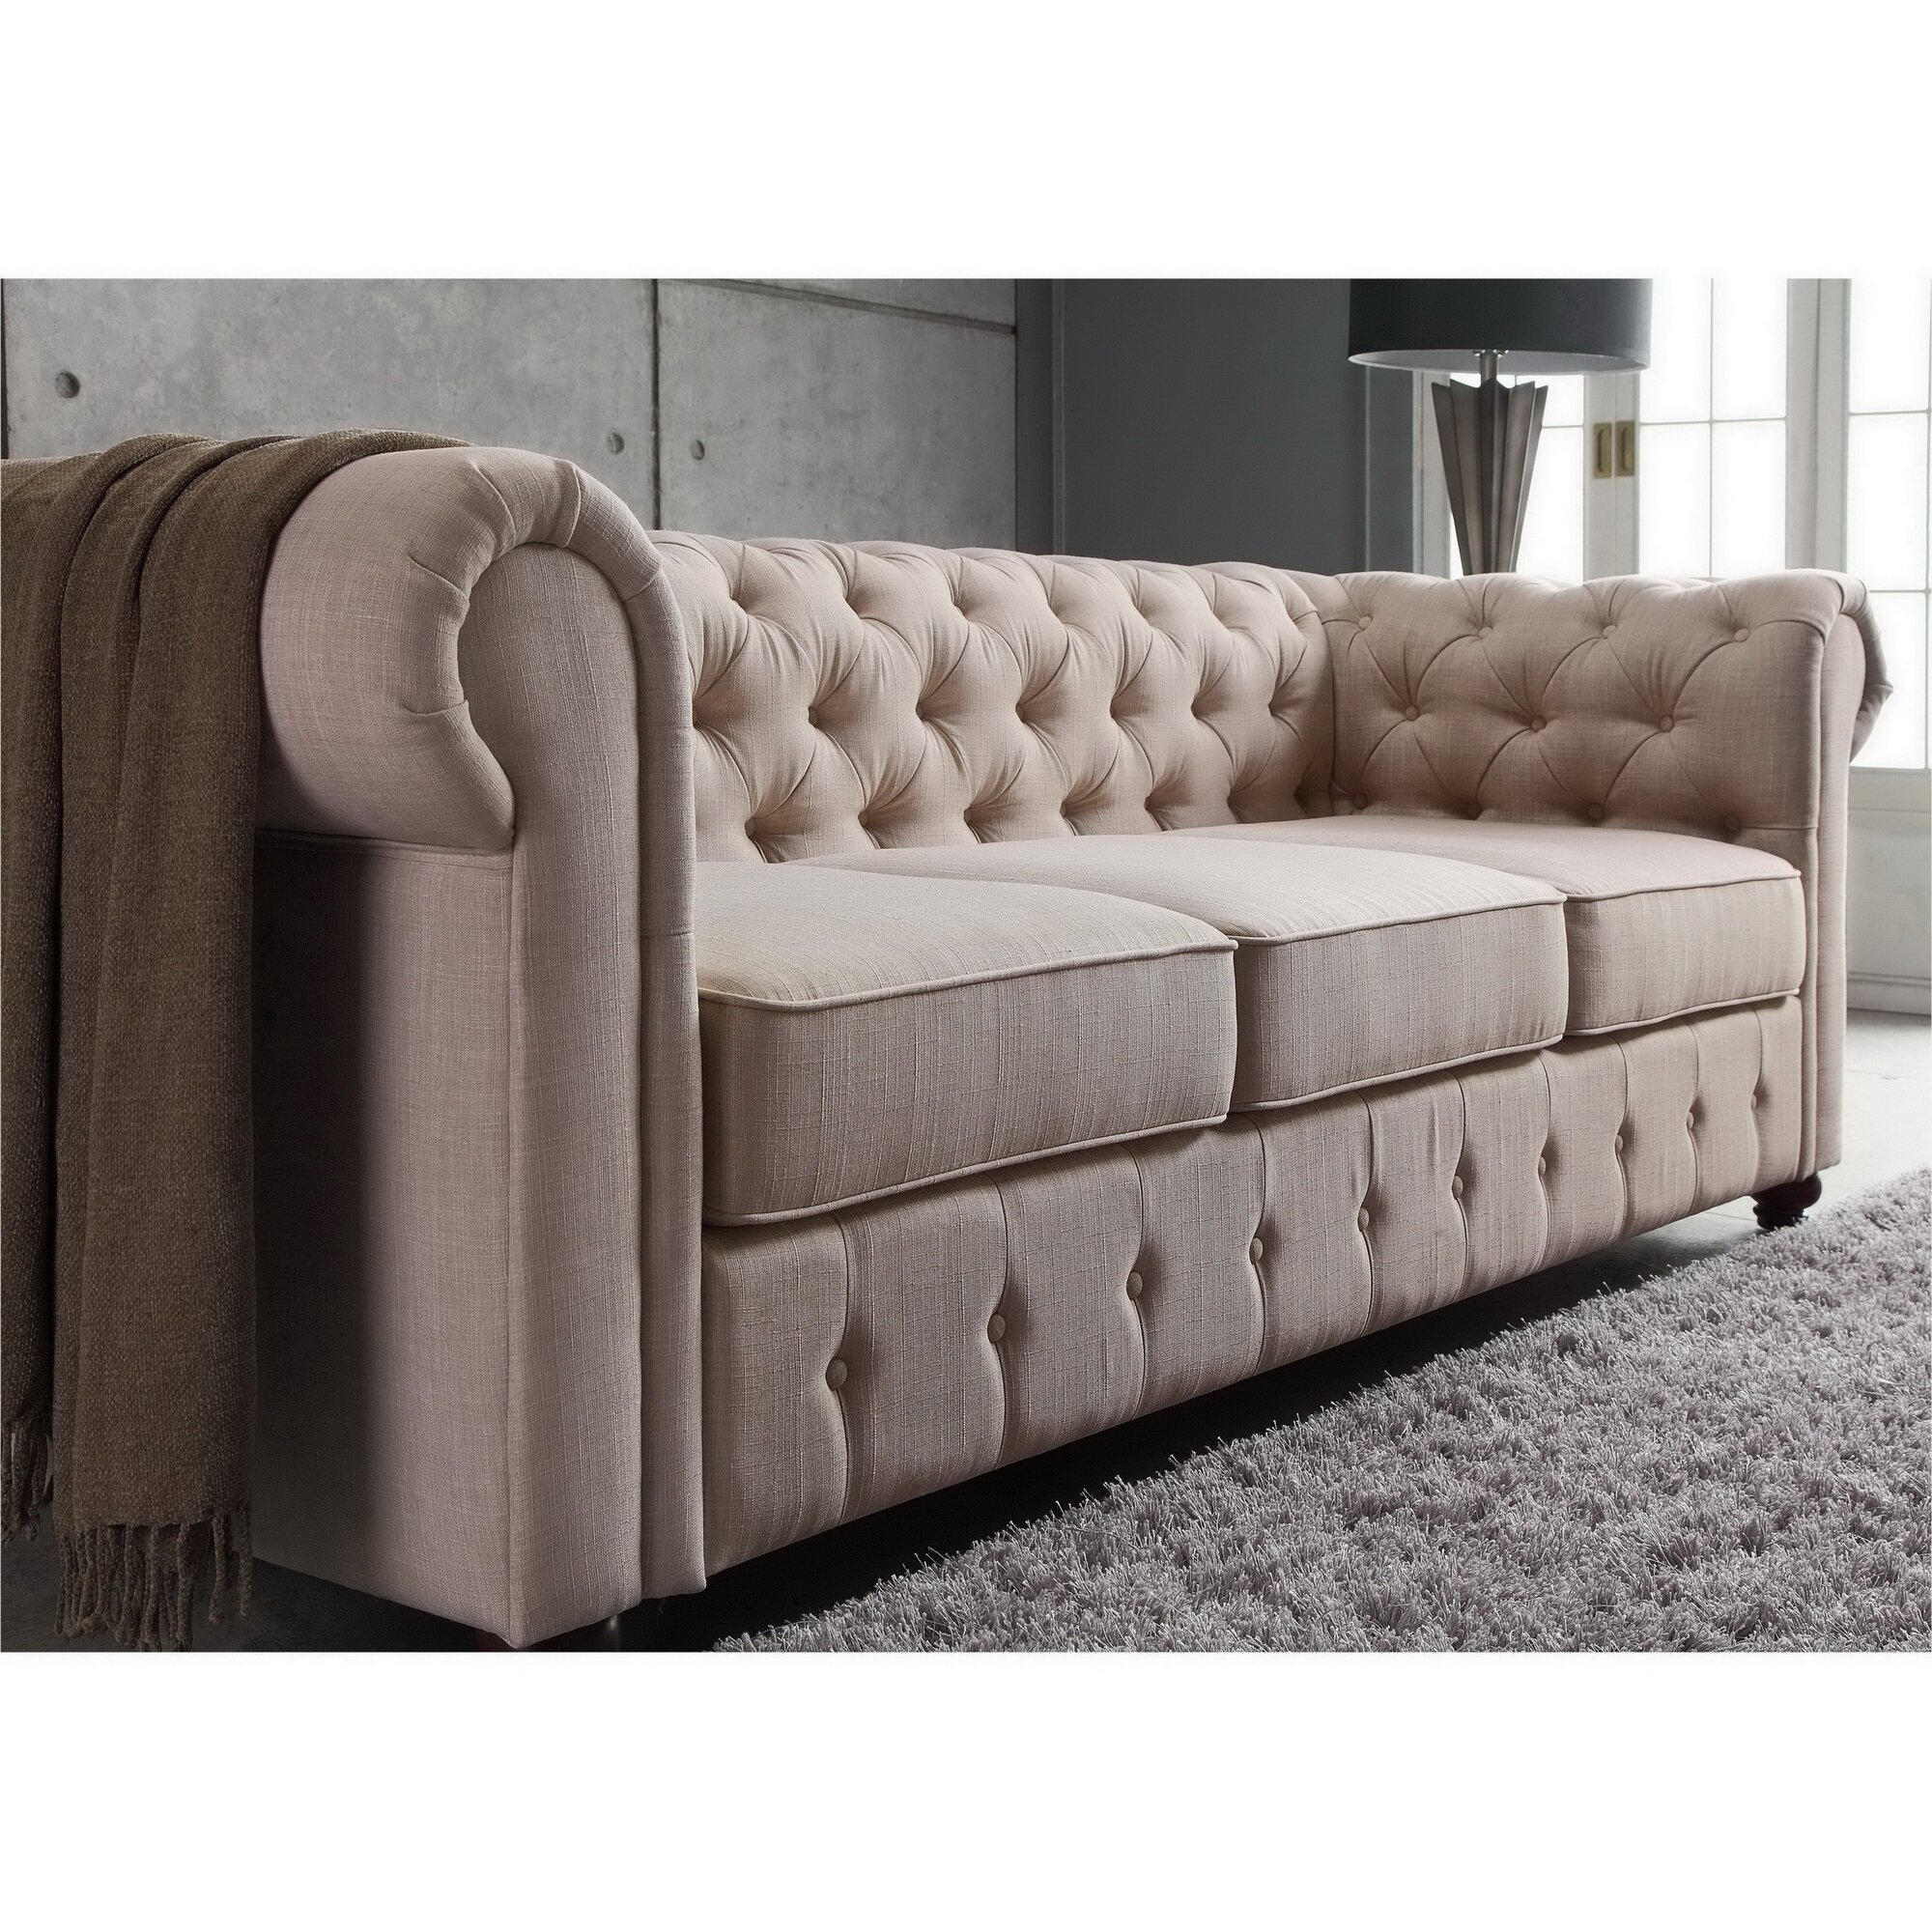 mulhouse furniture garcia chesterfield sofa reviews wayfair